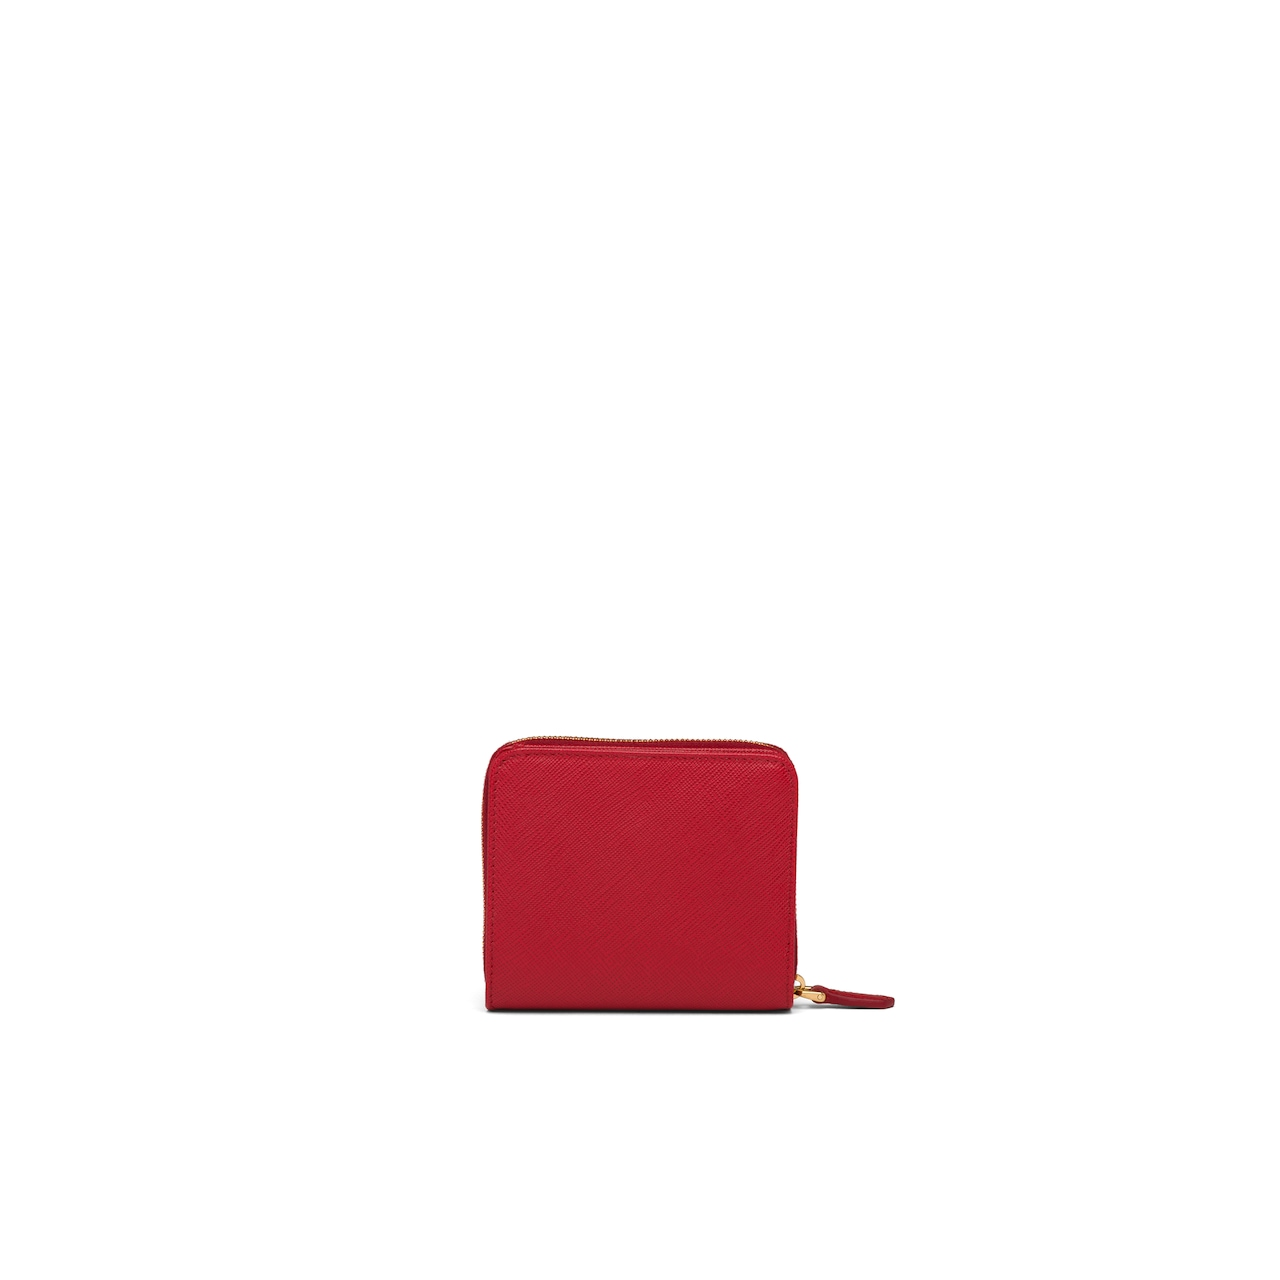 Small Saffiano leather wallet 5